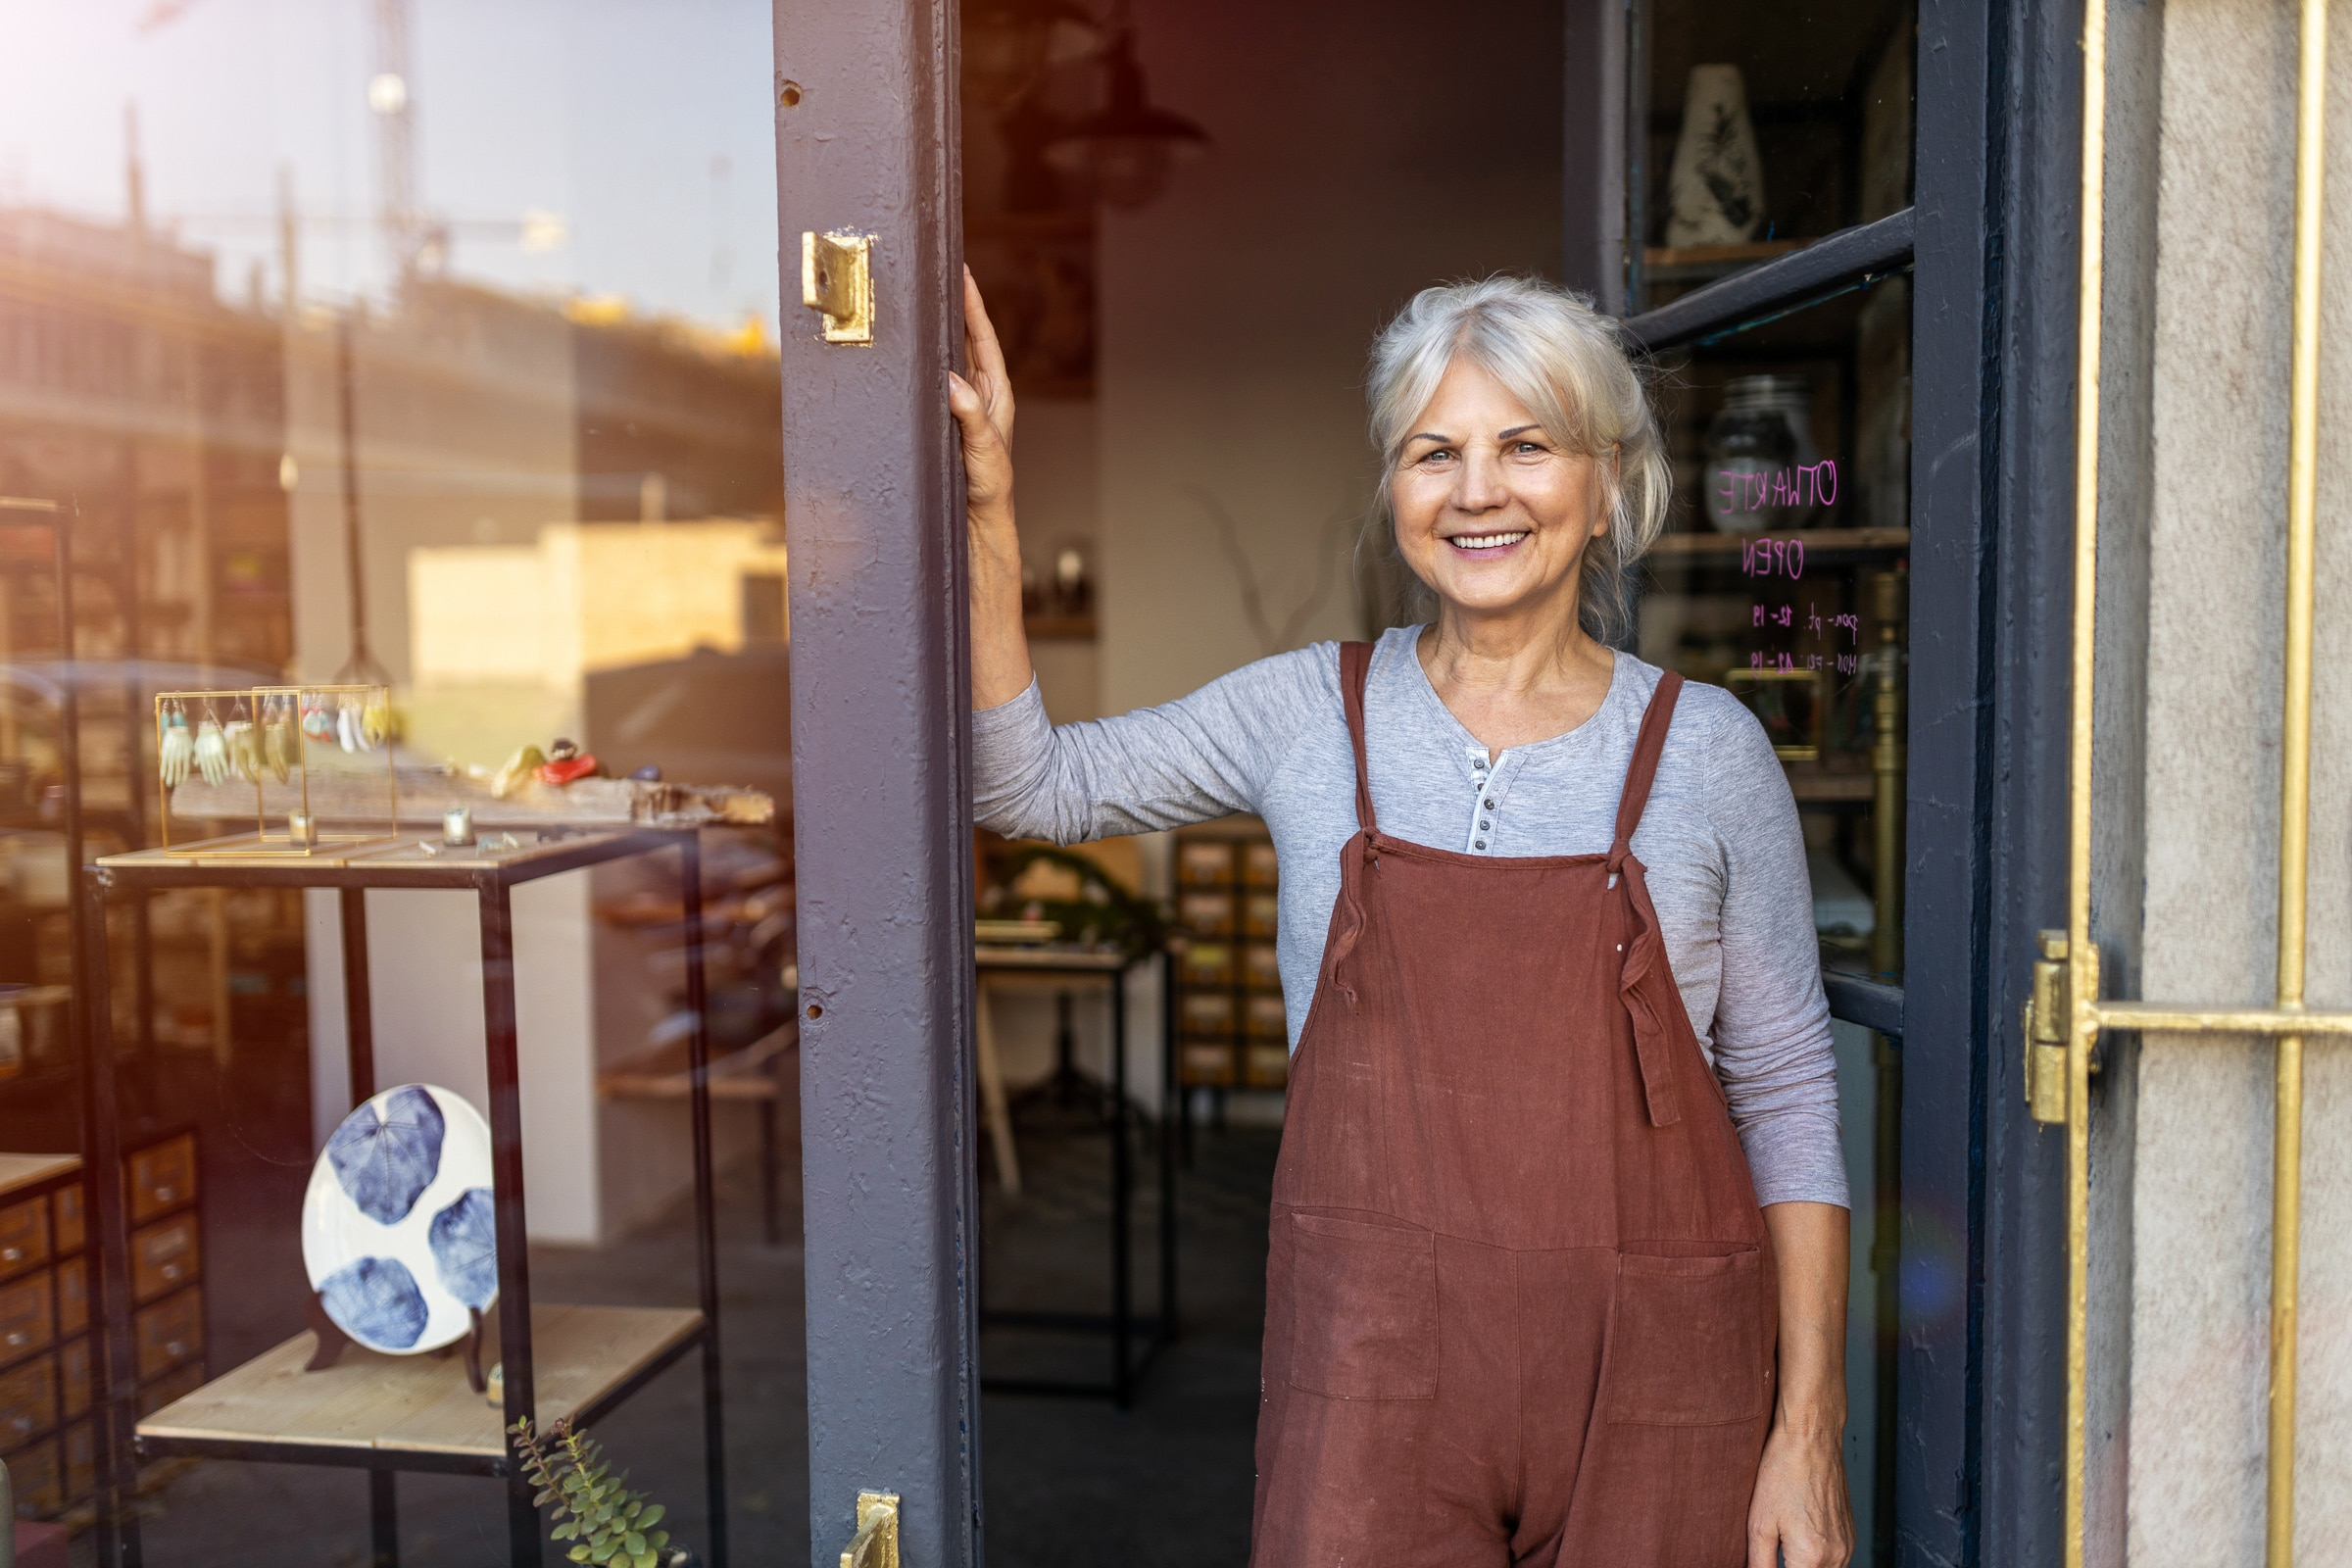 Portrait of smiling senior female pottery artist business owner in the doorway of her art studio